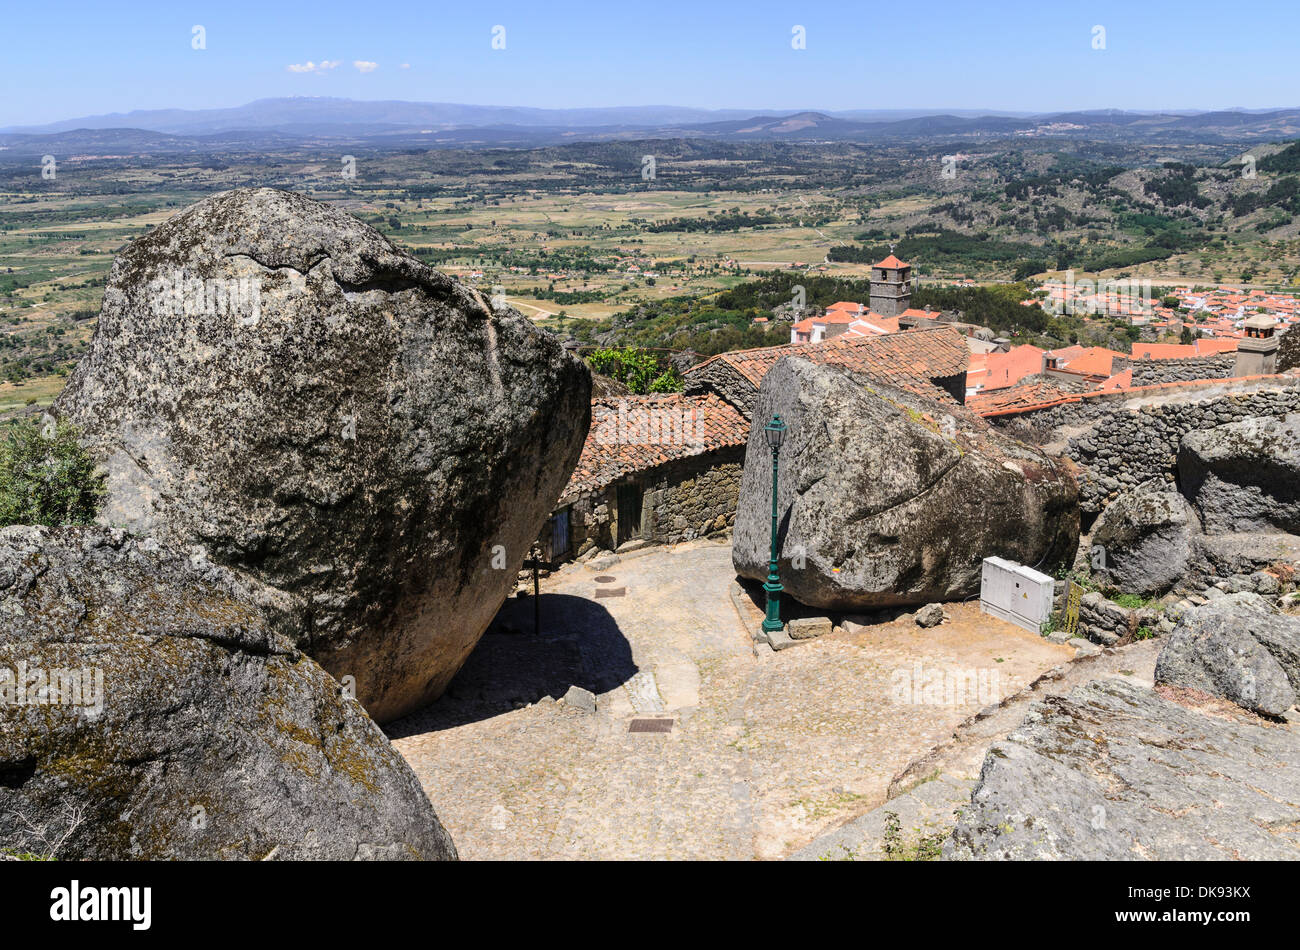 The granite rocks forming part of the medieval village Monsanto, Portugal - Stock Image